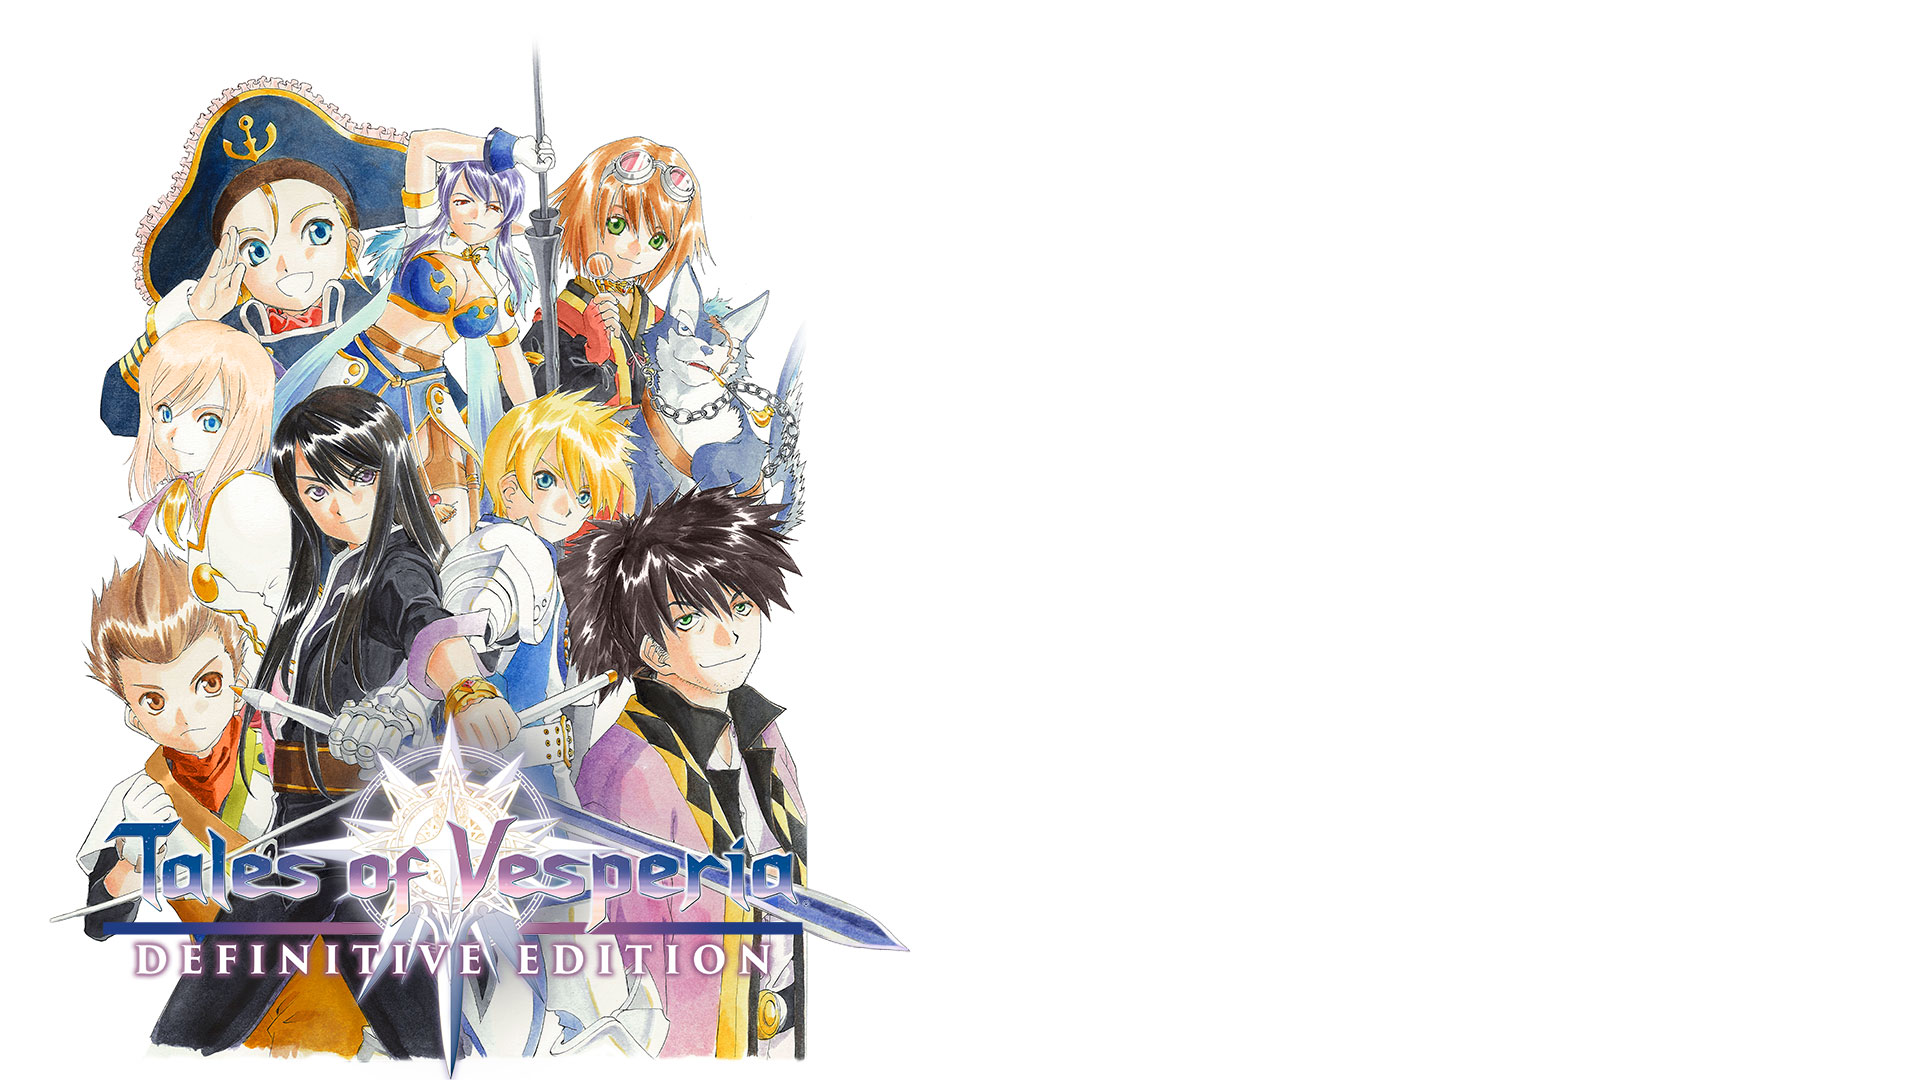 Tales of Vesperia: Definitive Edition, Grupo de personagens jogáveis juntos.